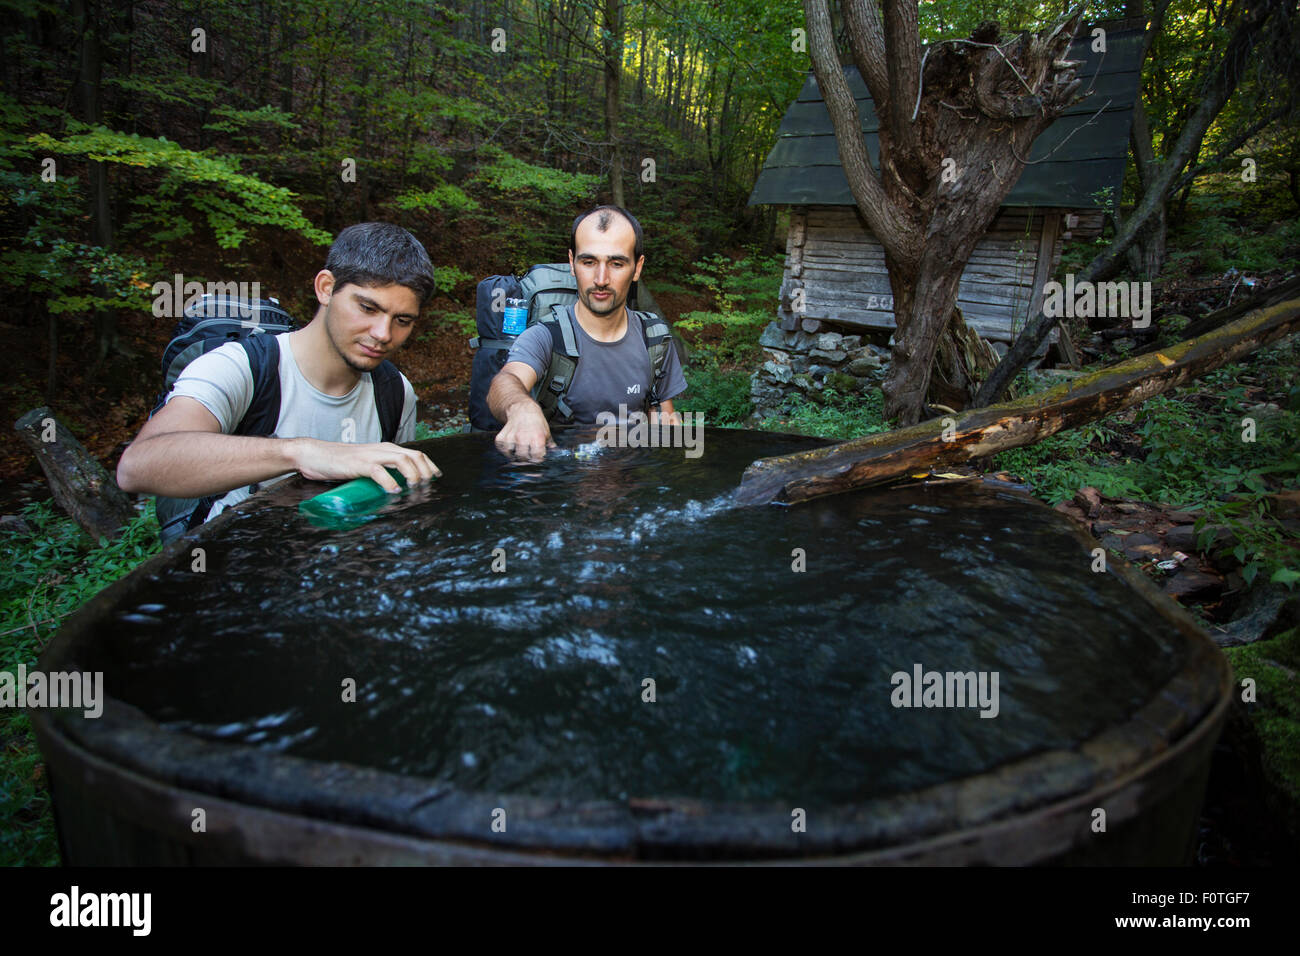 Hikers replenishing their water supplies at an old mill in the forest outsde the village of Isverna. Geoparcul Platoul - Stock Image